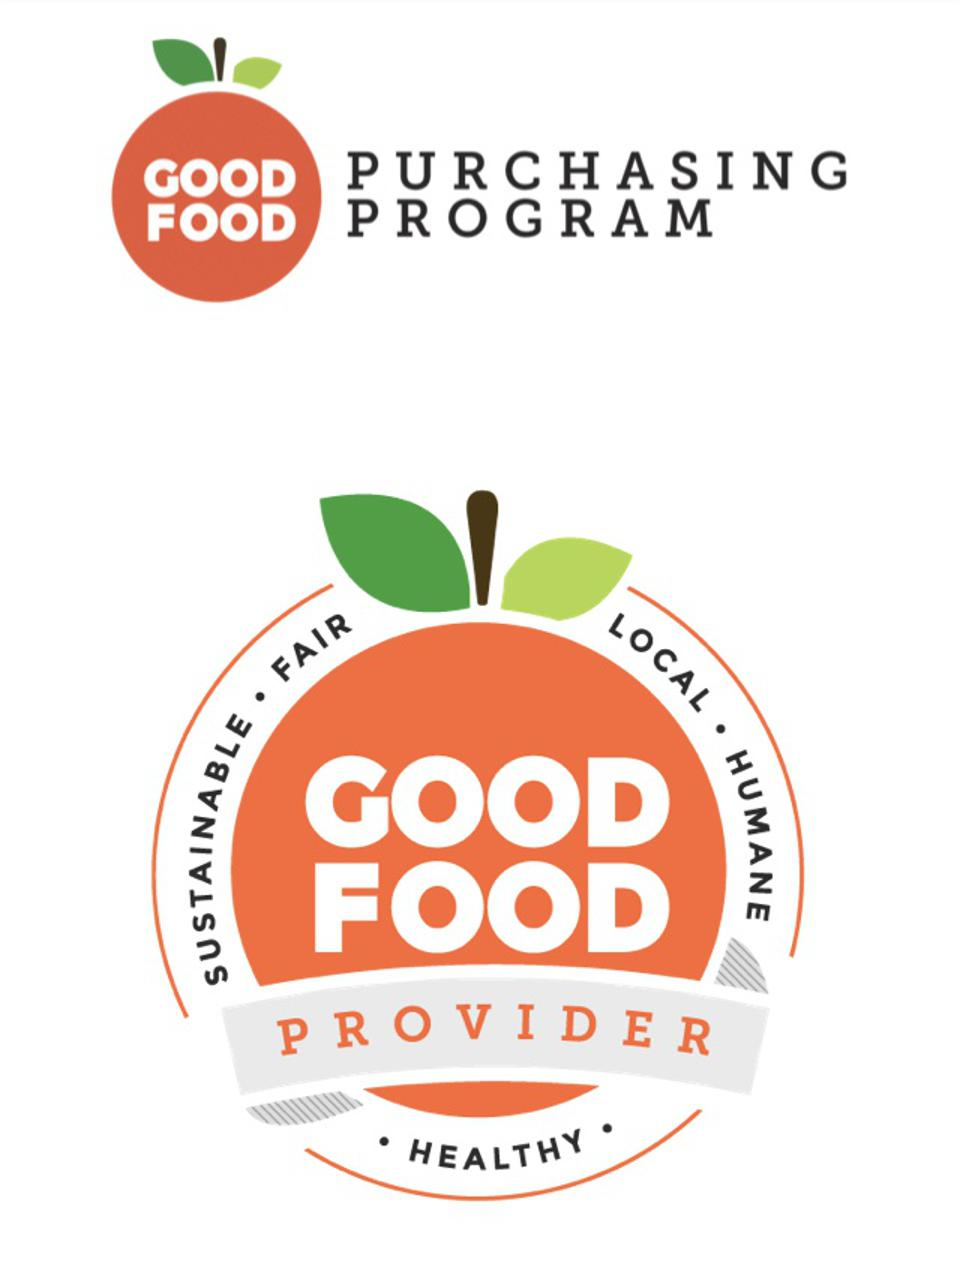 Good Food Purchasing Program's seal of approval.